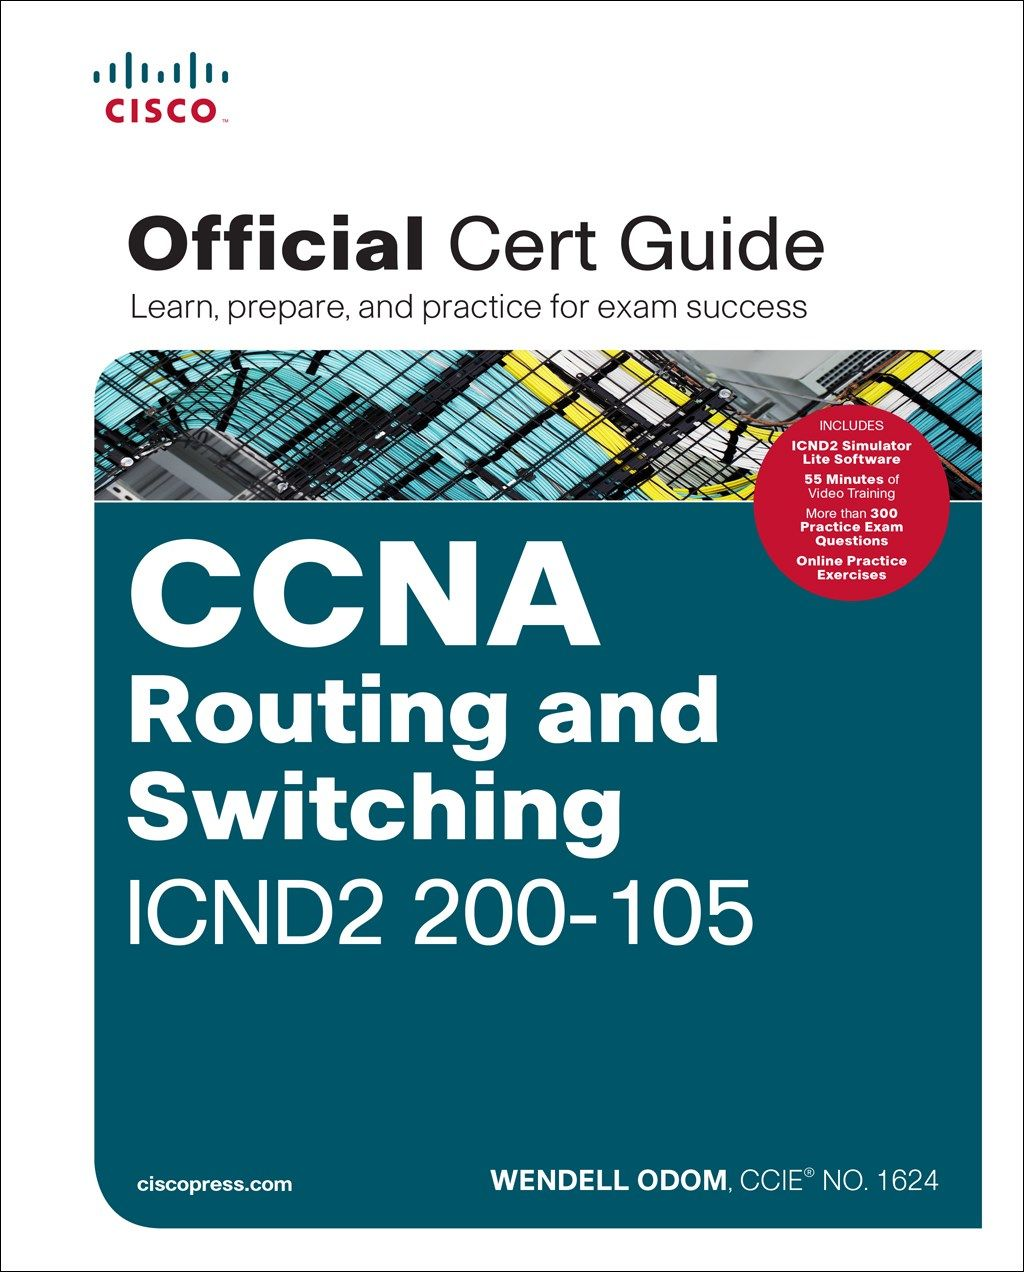 ccna routing and switching 200 125 official cert guide pdf